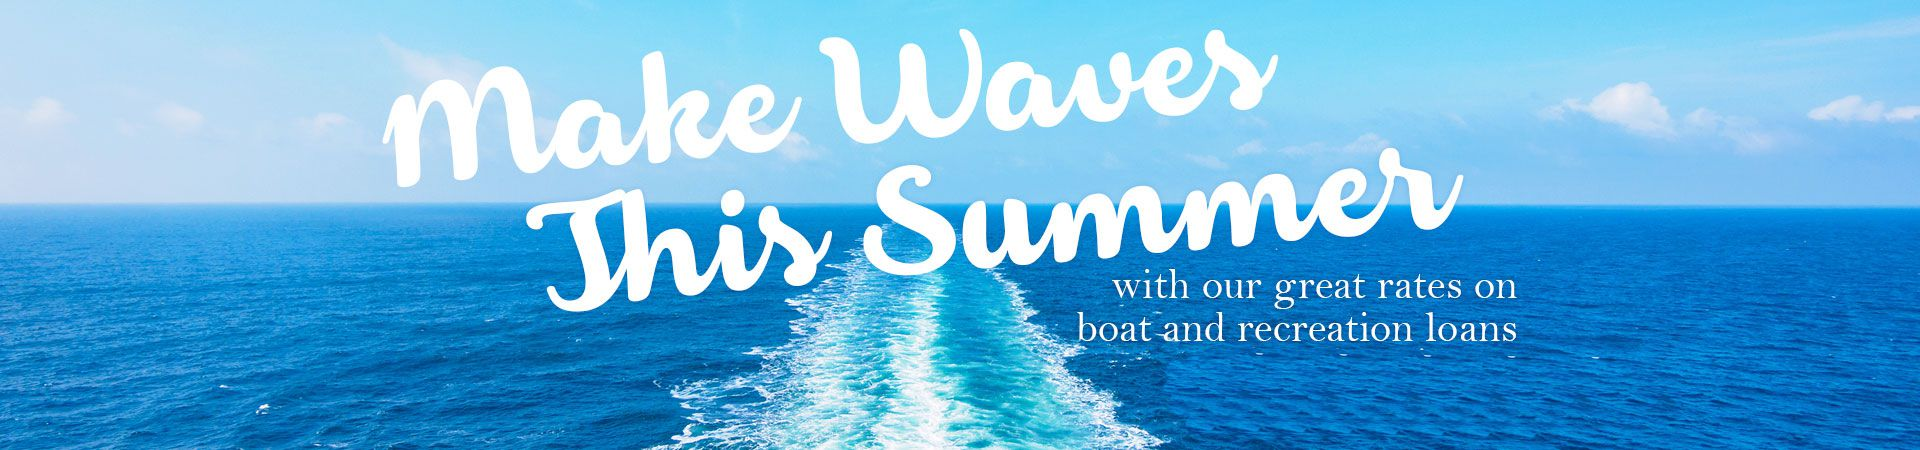 Make waves this summer with our great rates on boat and recreation loans